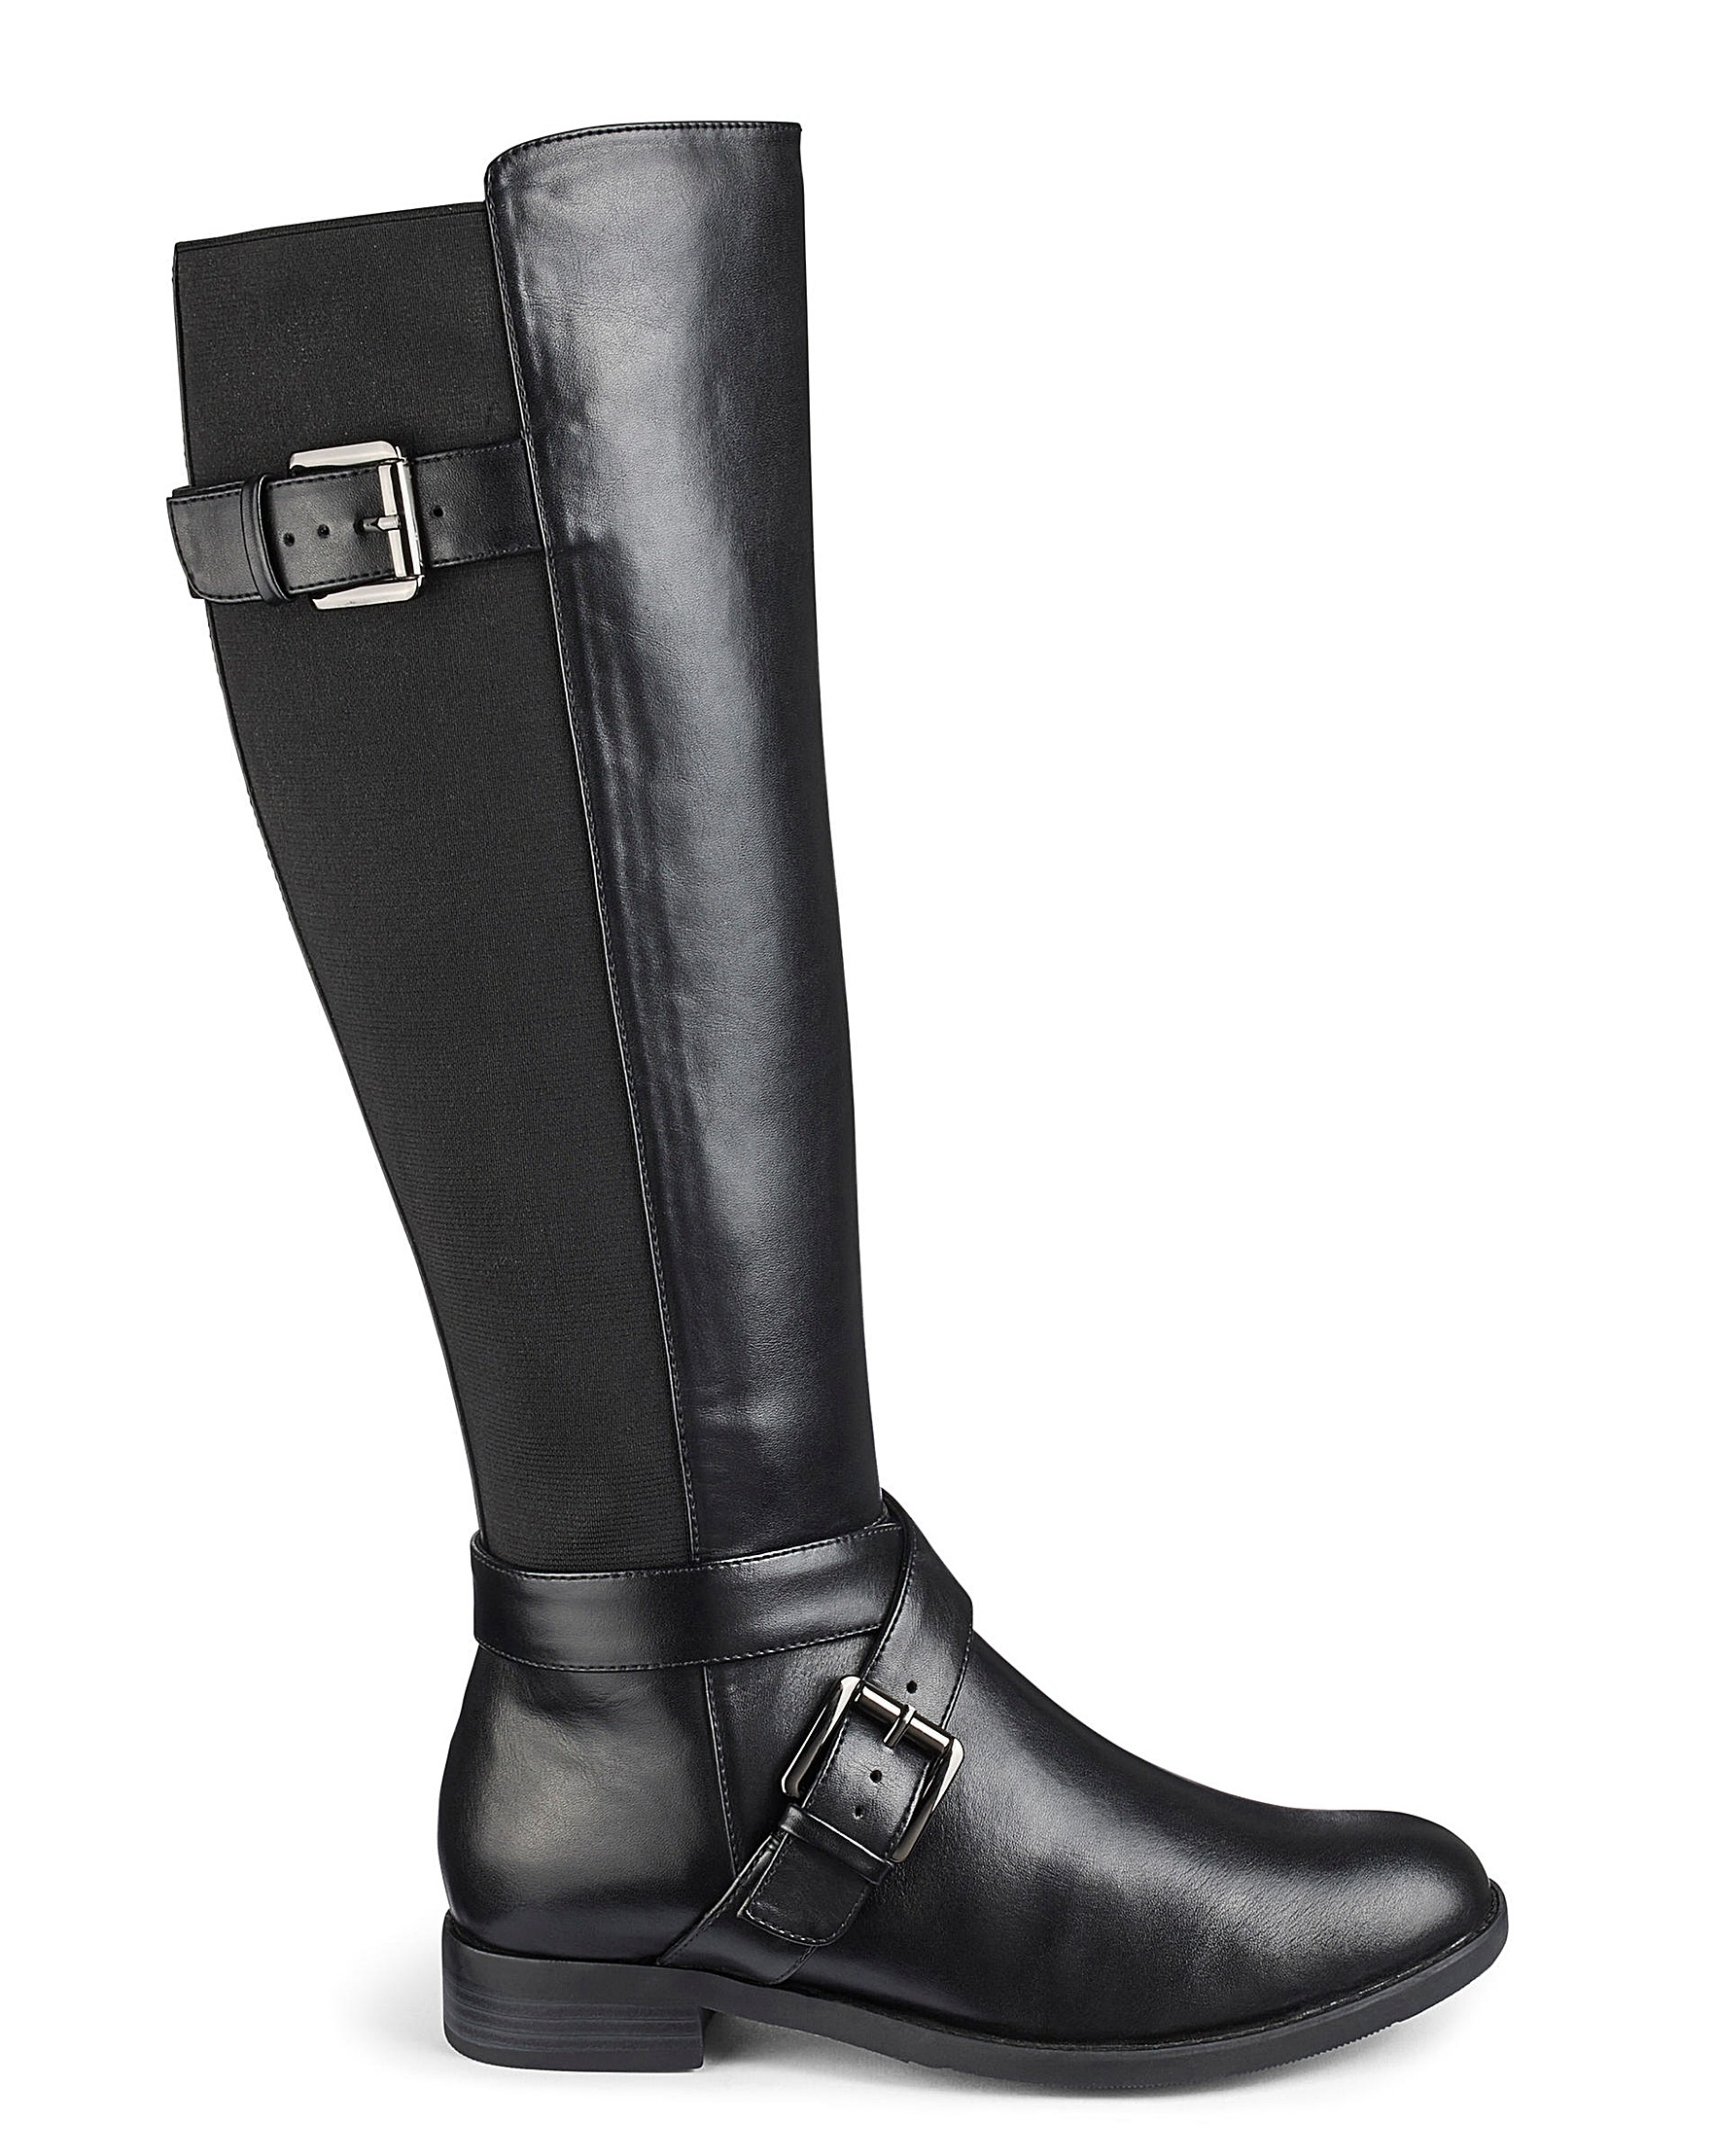 45a7085f79f High Leg Boots EEE Fit Curvy Calf